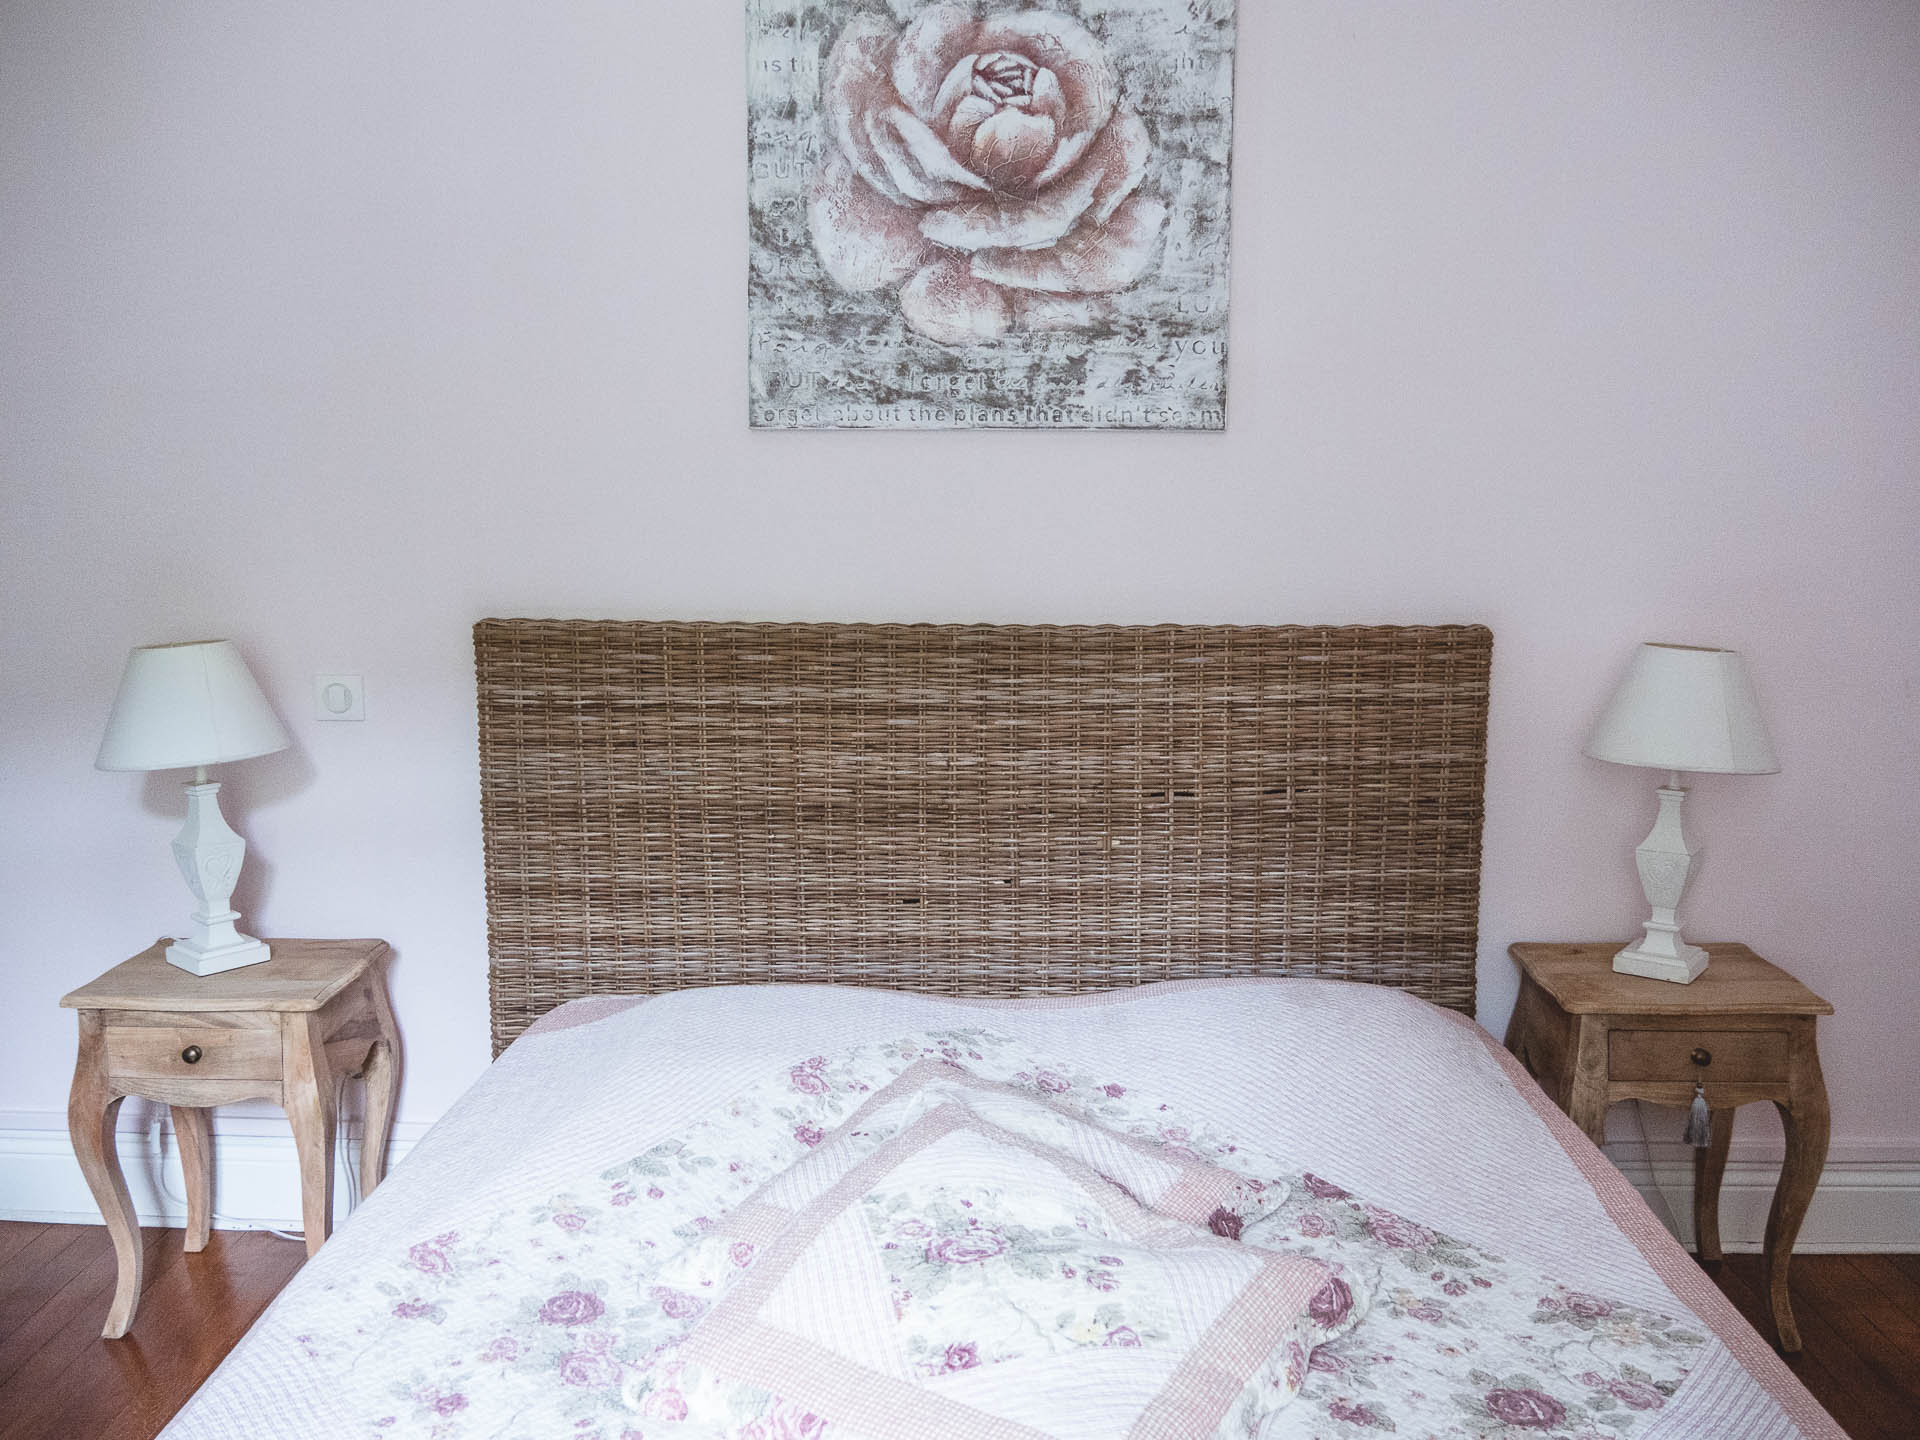 Haybes clos belle rose chambre